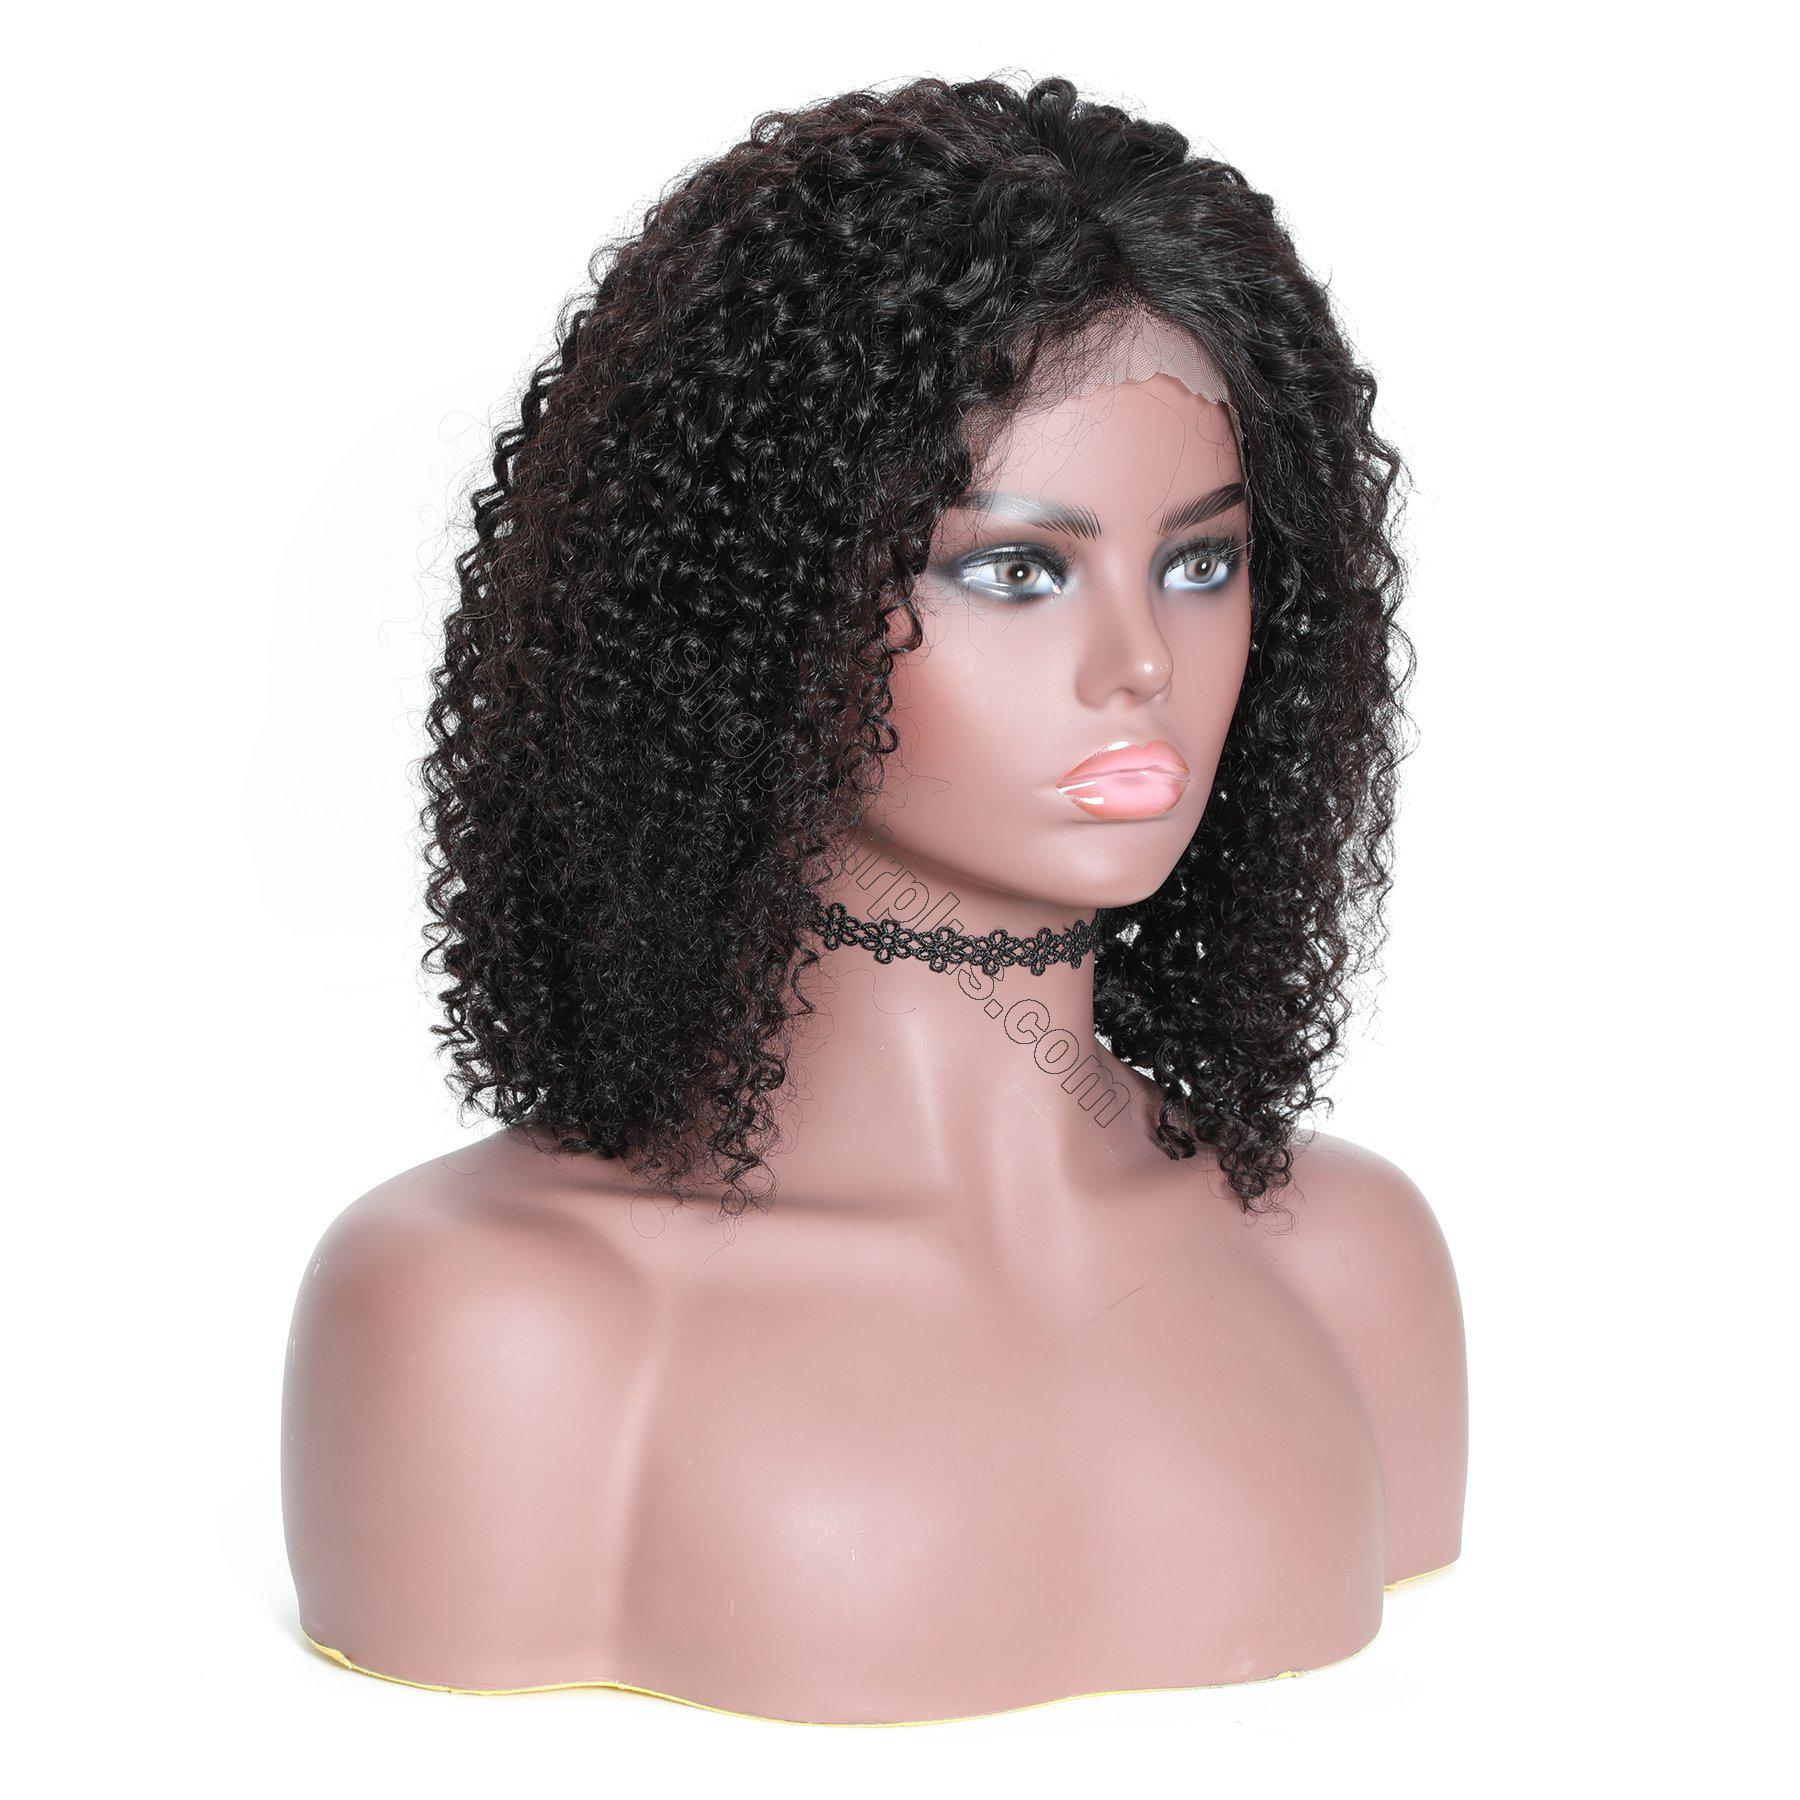 9A 13*4 Short Bob Curly Hair Lace Front Wig On Deals, 150%/180% Densit 3